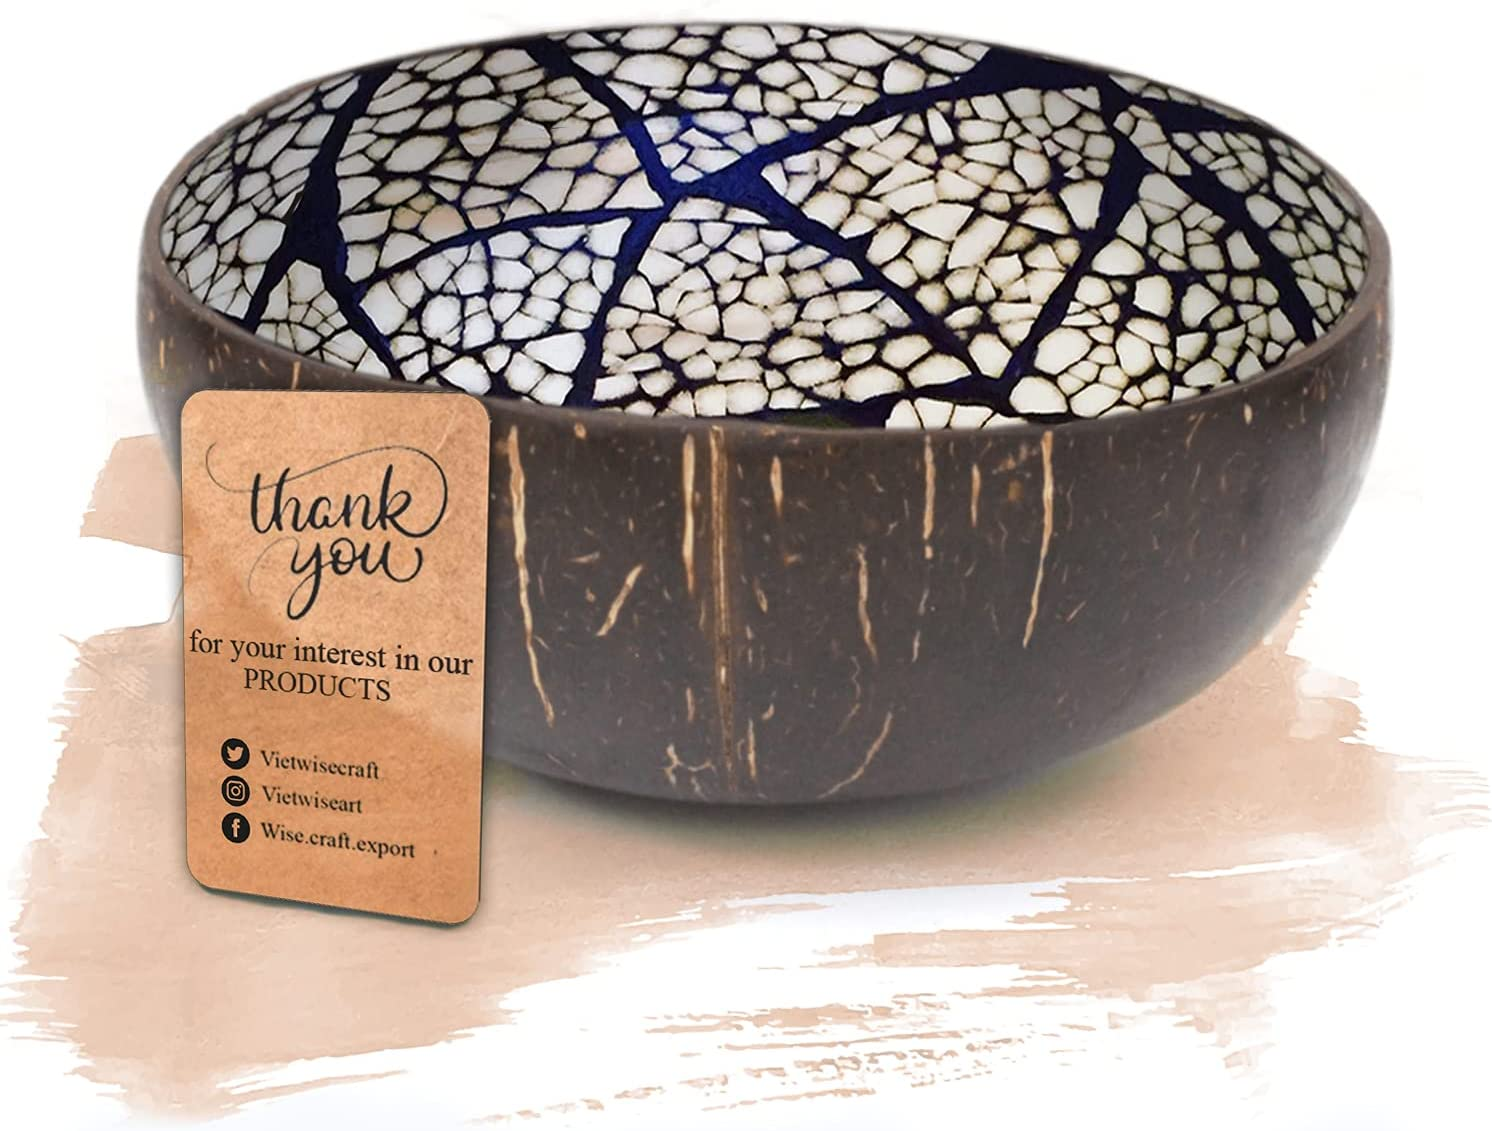 Wise Art Vietnamese Coconut Bowl with Egg Shell Inlaid, Natural and Handmade Multipurpose Coconut Bowl (Black) for Home & Kitchen Décor